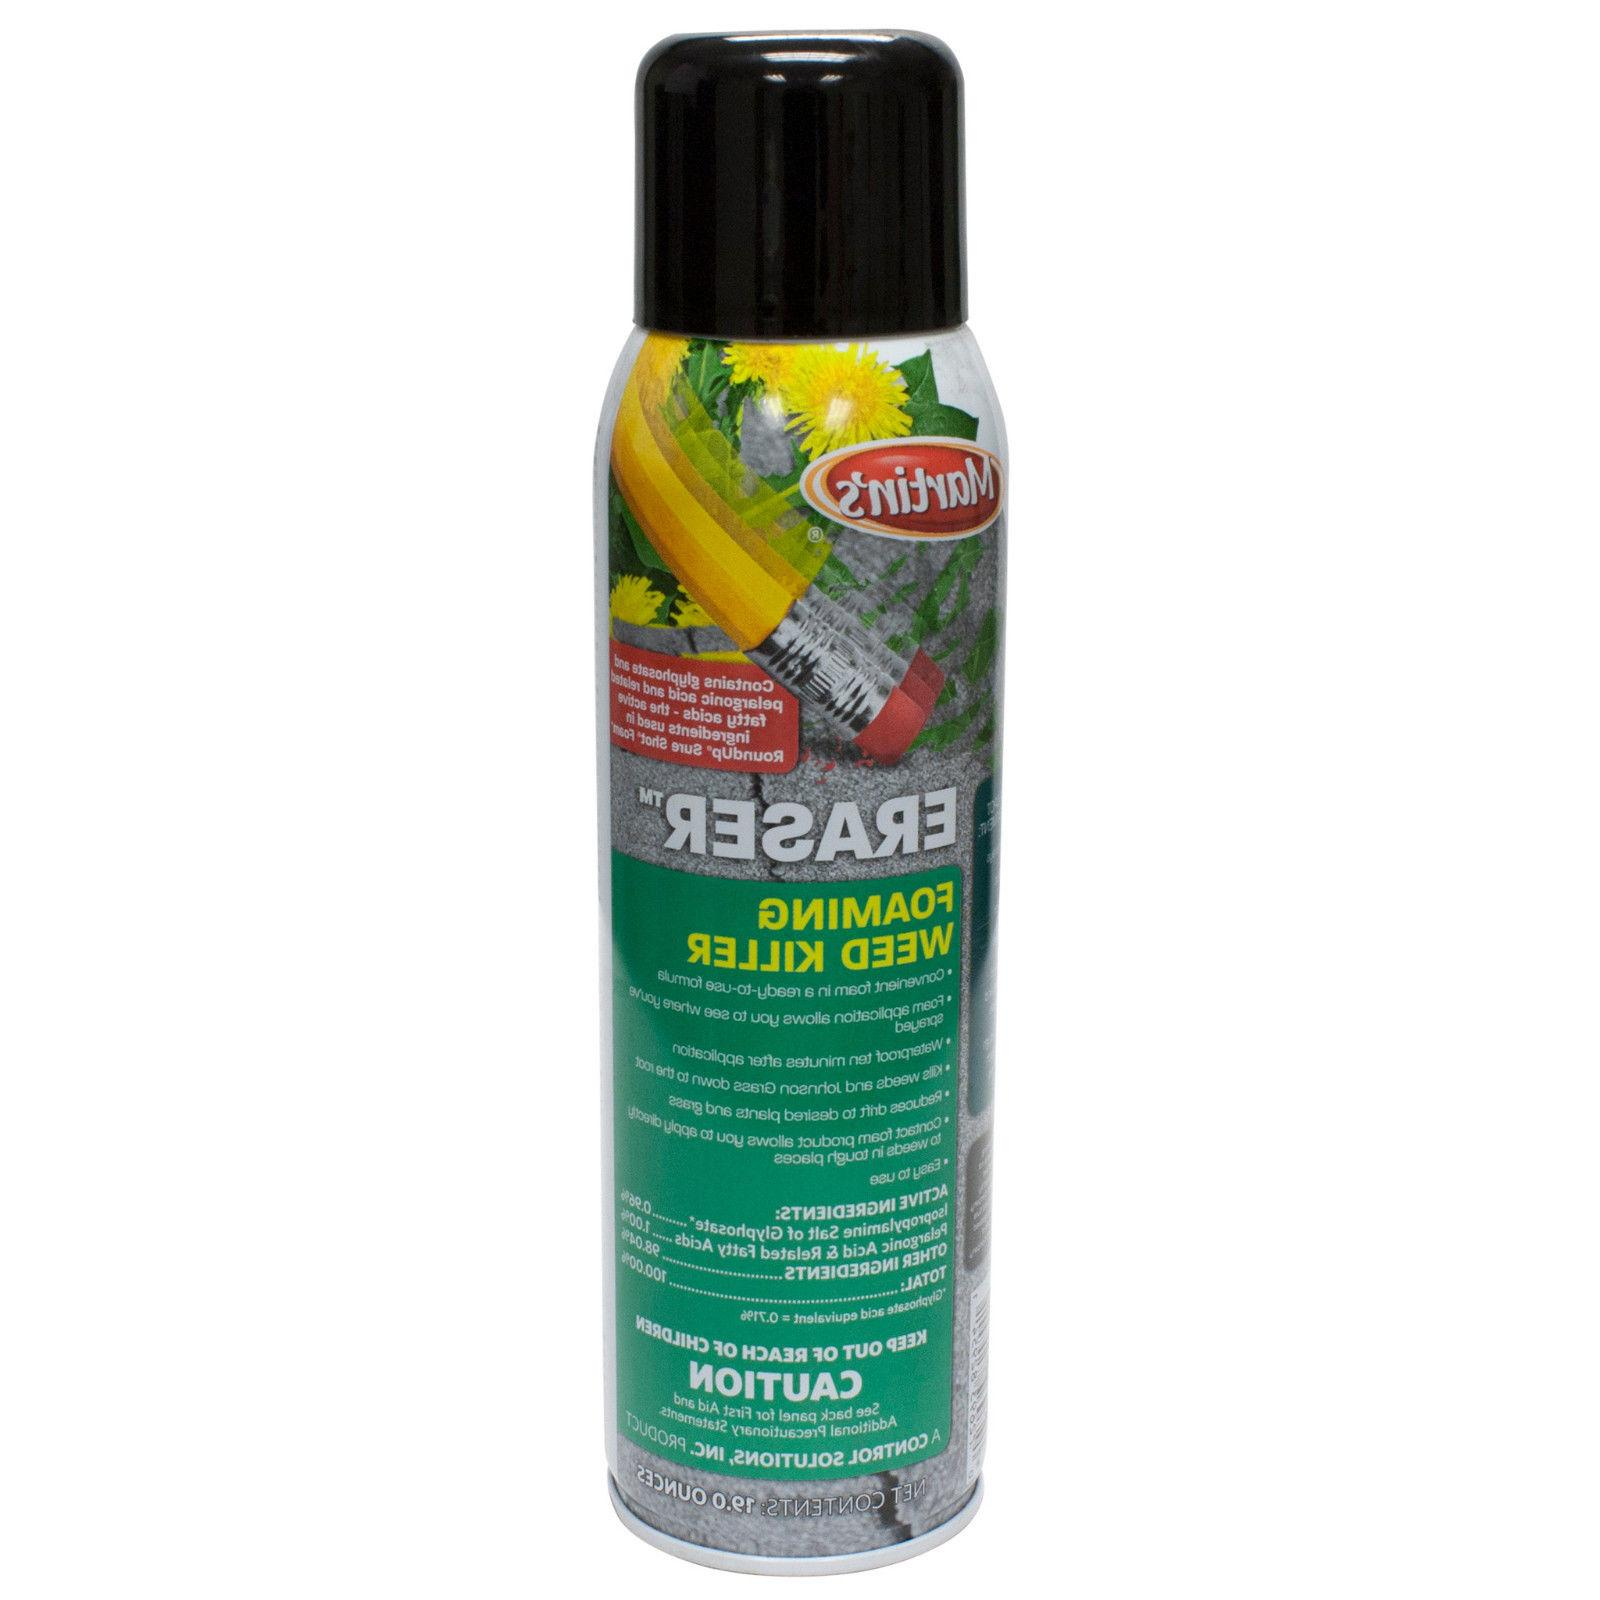 ERASER Foaming Weed 19 oz Glyphosate Kills All &